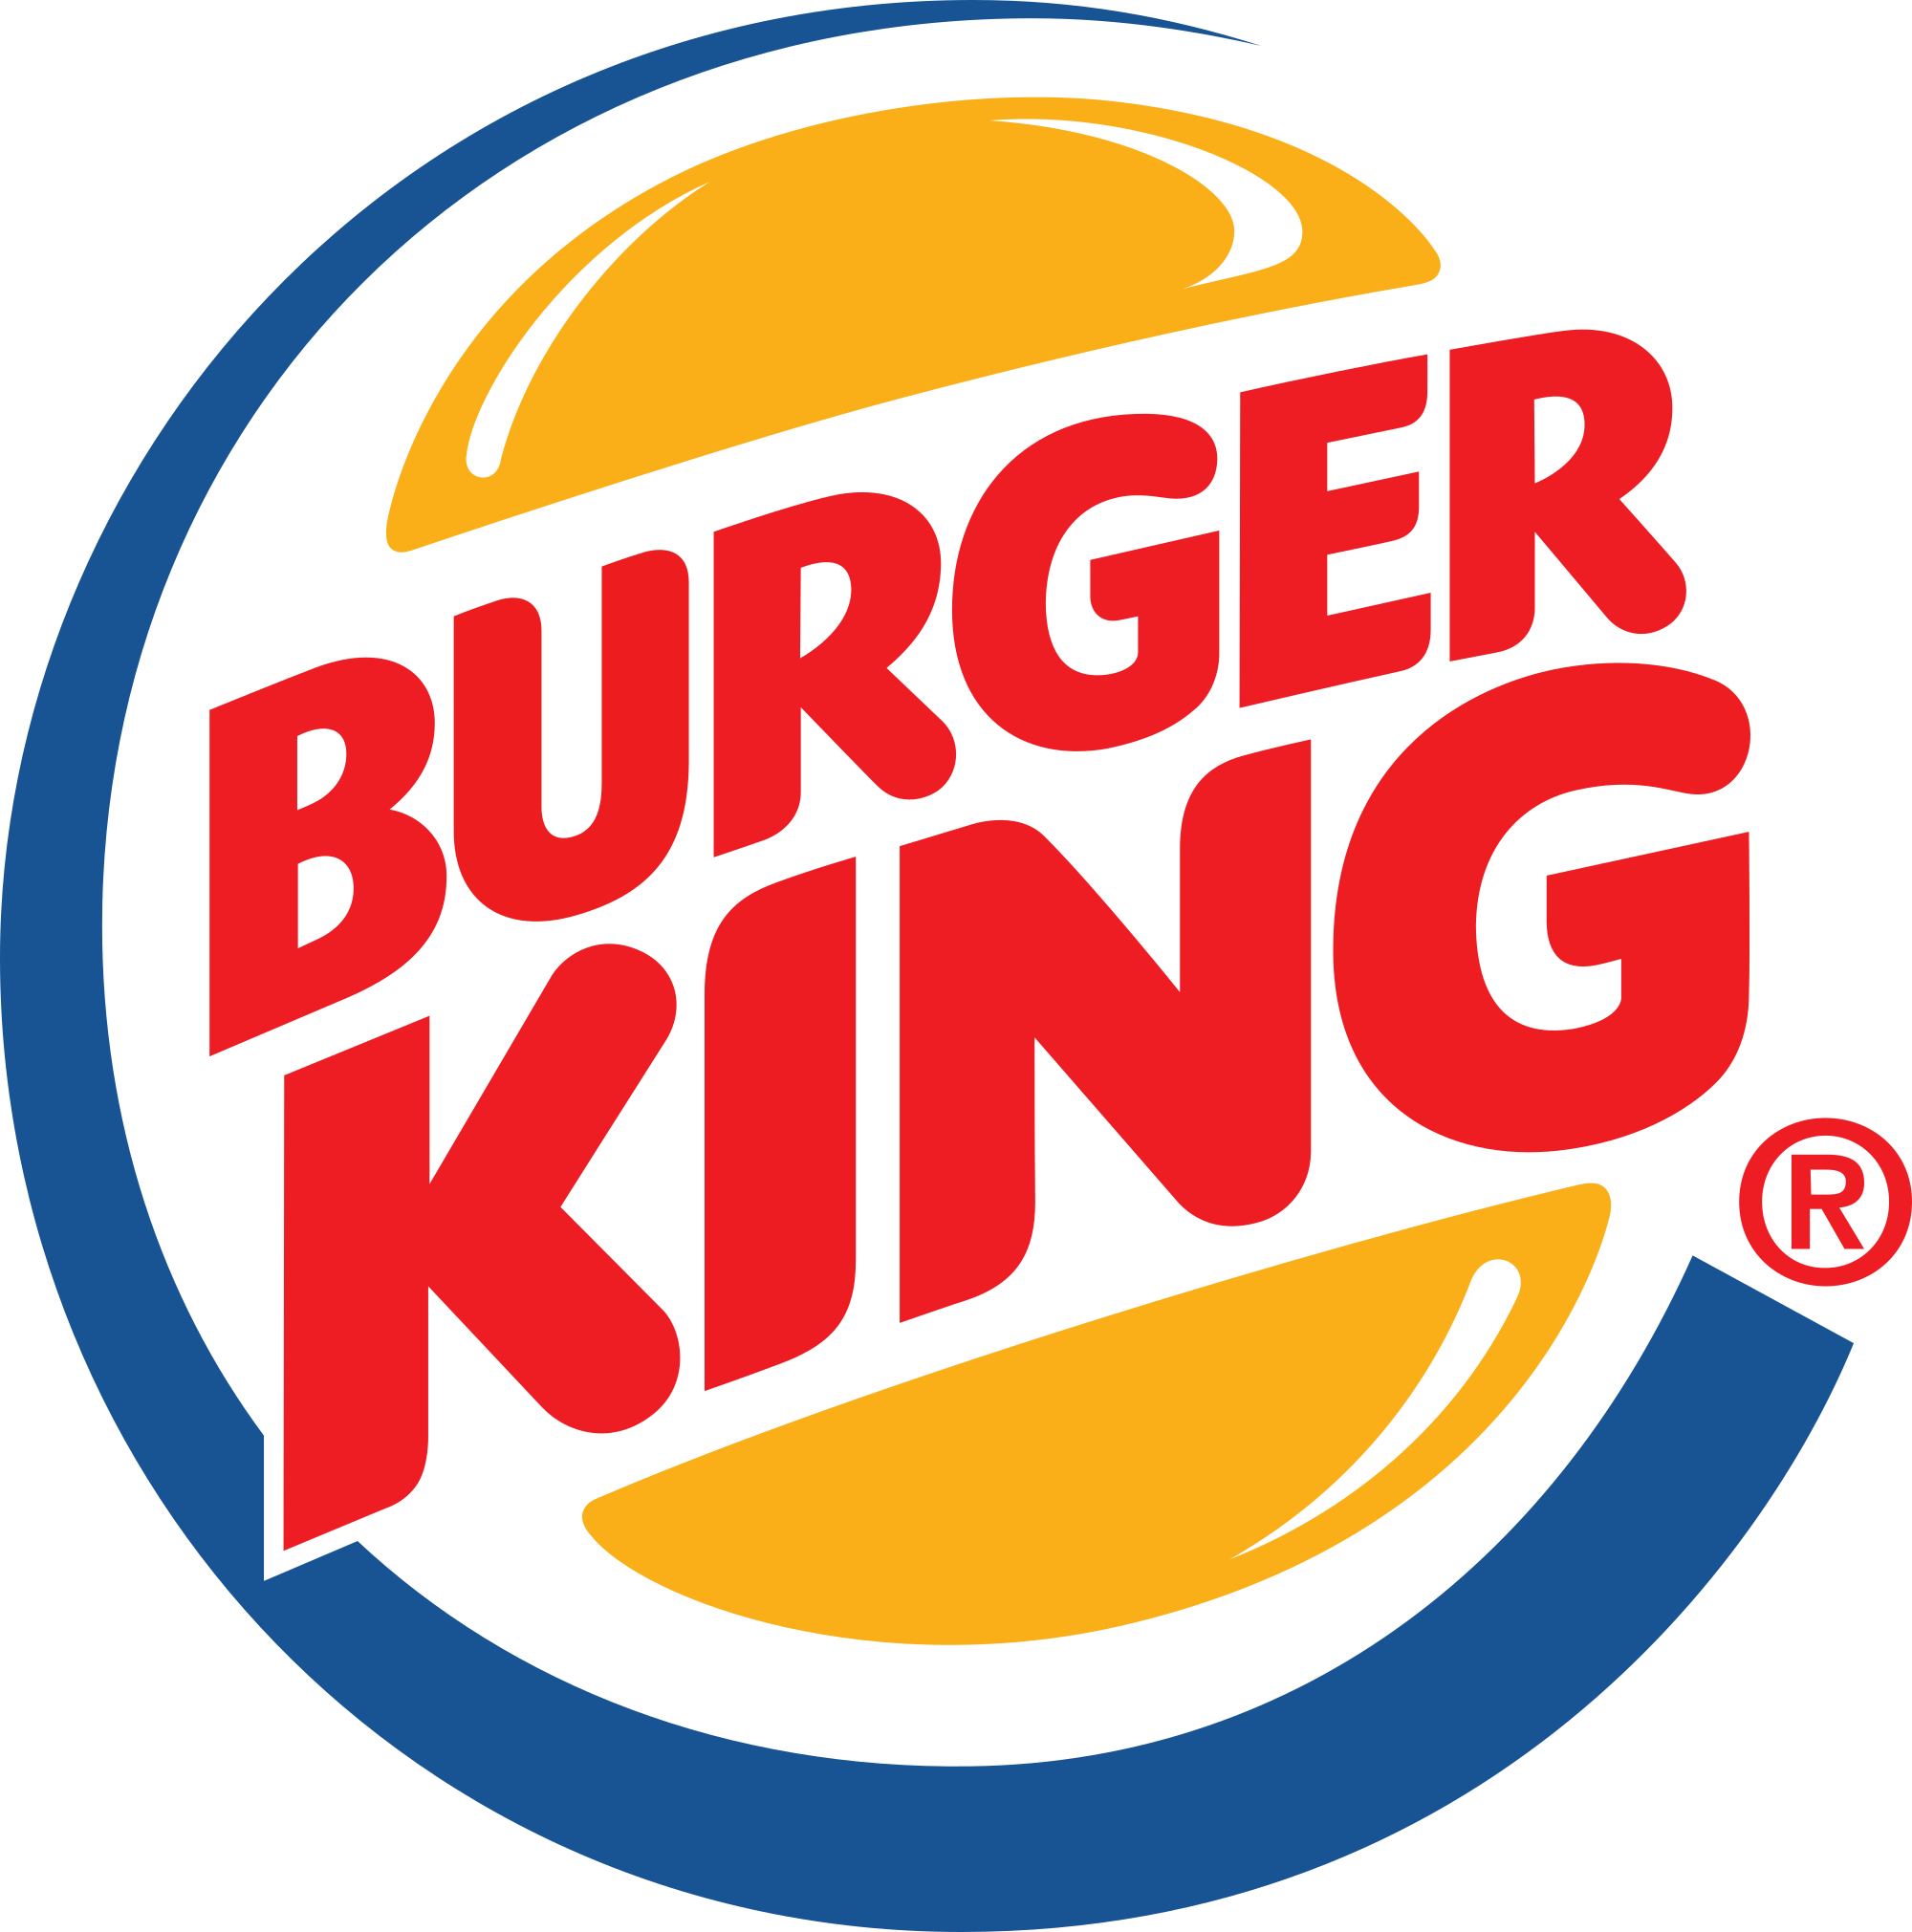 image burger king nickelodeon fandom powered by wikia. Black Bedroom Furniture Sets. Home Design Ideas